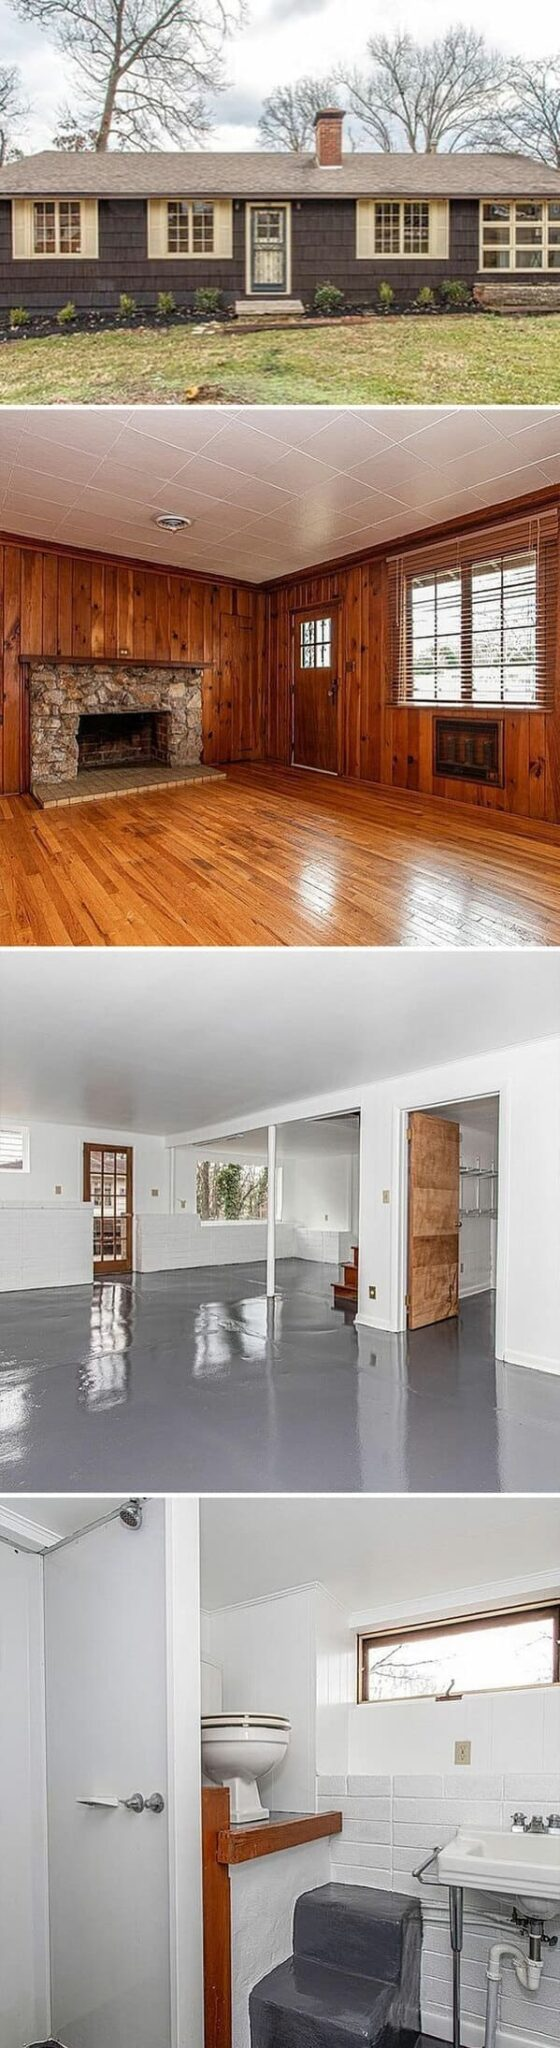 Best of zillowgonewild, Zillow gone wild, Funny weird Zillow listings, houses, strange real estate, funny photos of houses